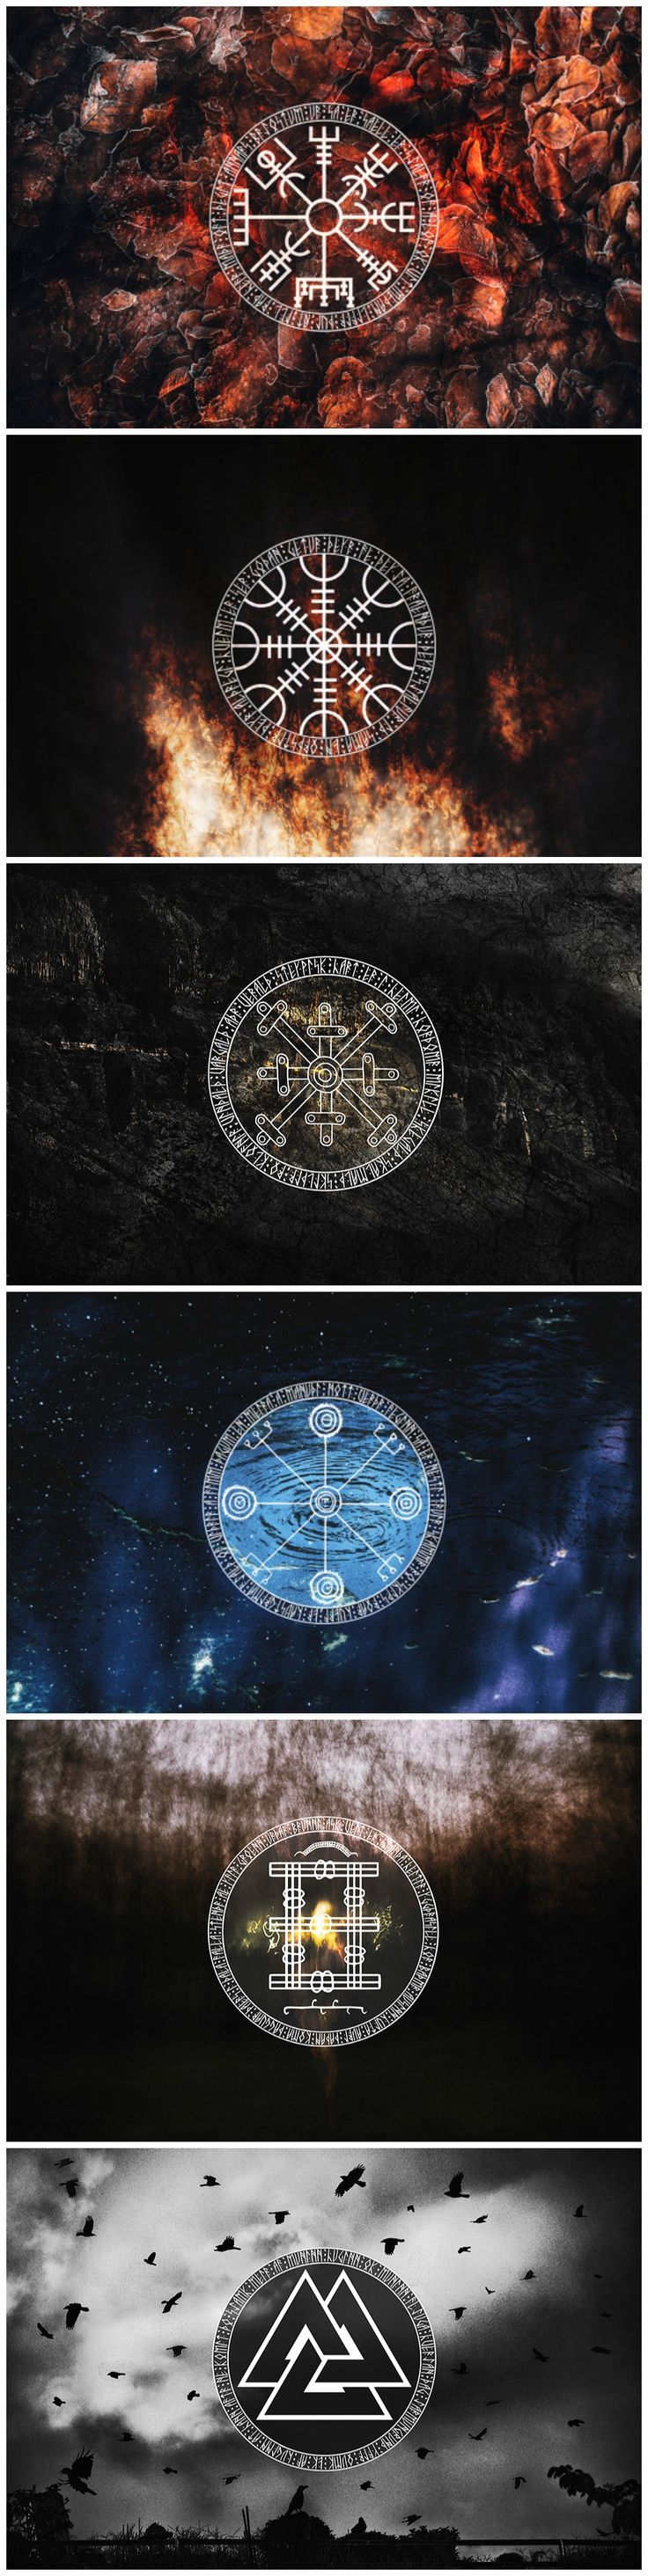 The complete Icelandic staves / Ásatrú symbol series. Each artwork is representing an element. They are presented here in the following order : fire, earth, metal, water, wood and air. The symbols are accompanied by stanzas of the Hávamál or Völuspá, written in runes. You can find the stanzas in English and the names of the symbols on each individual post here http://avaluk.tumblr.com/tagged/pagan